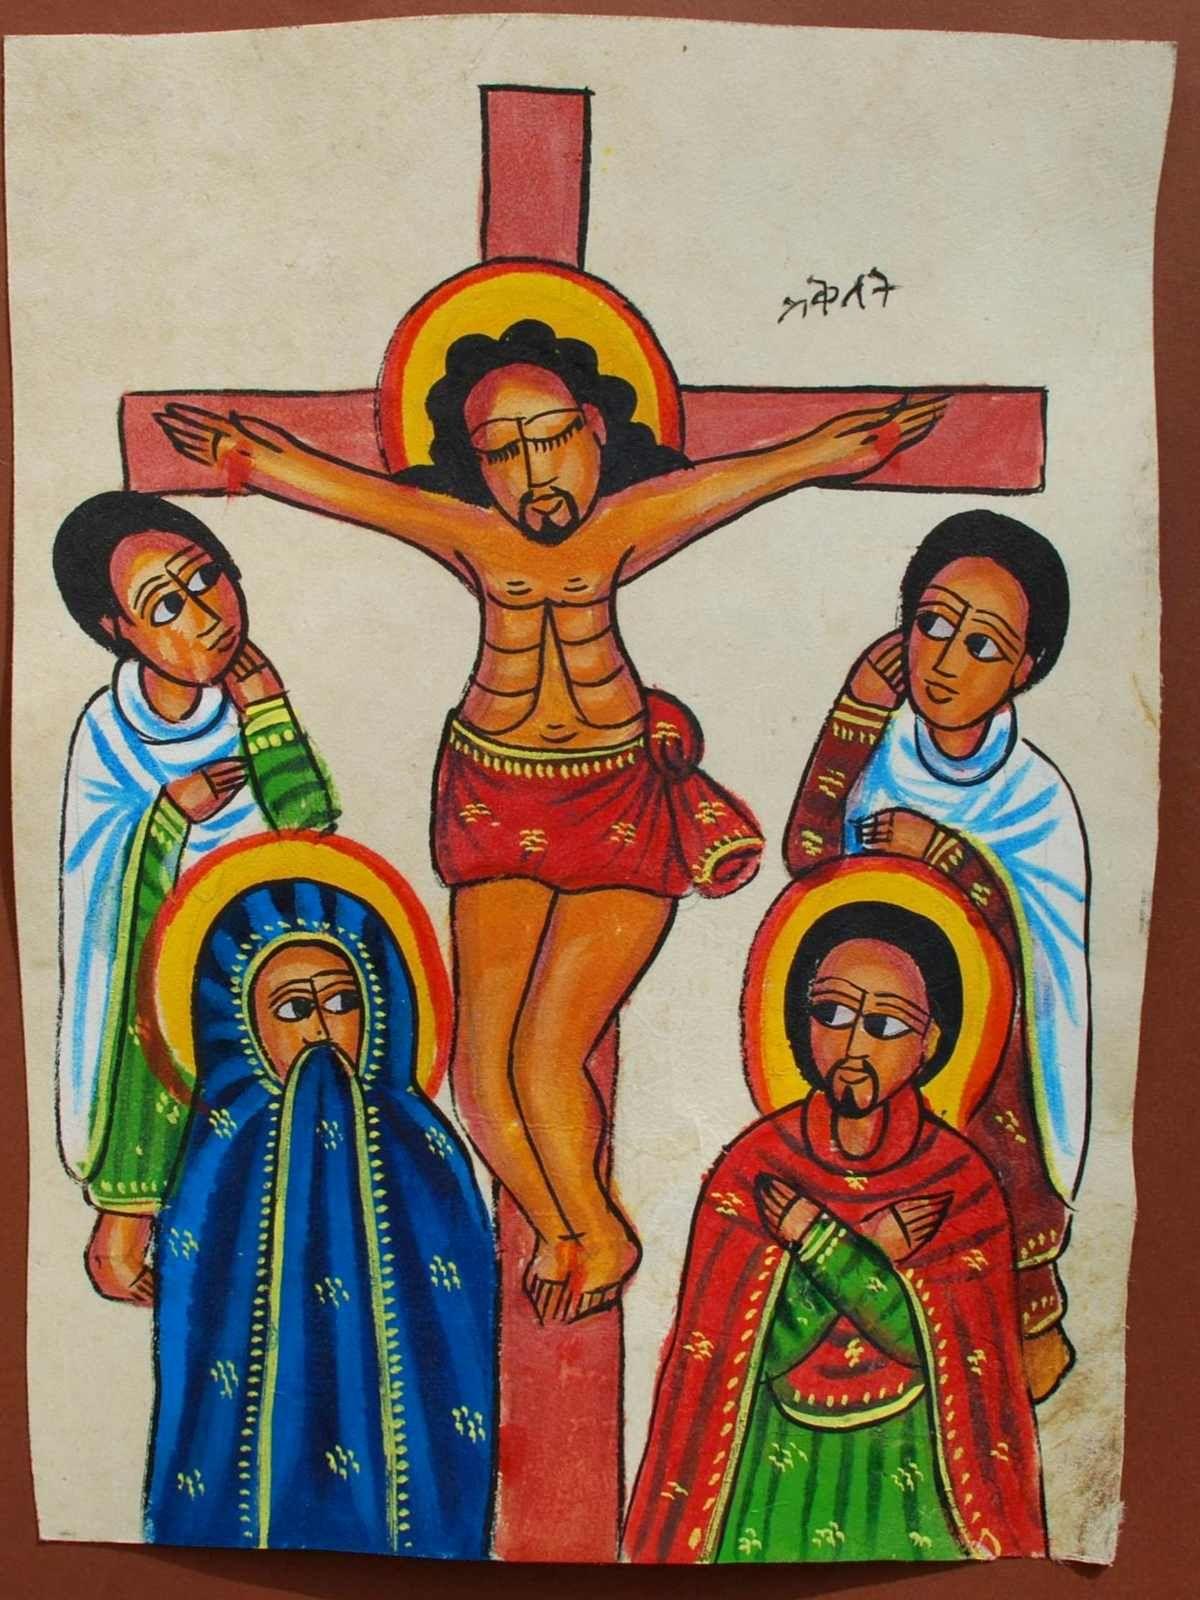 Related image Crucifixion of jesus, African art, Crucifixion